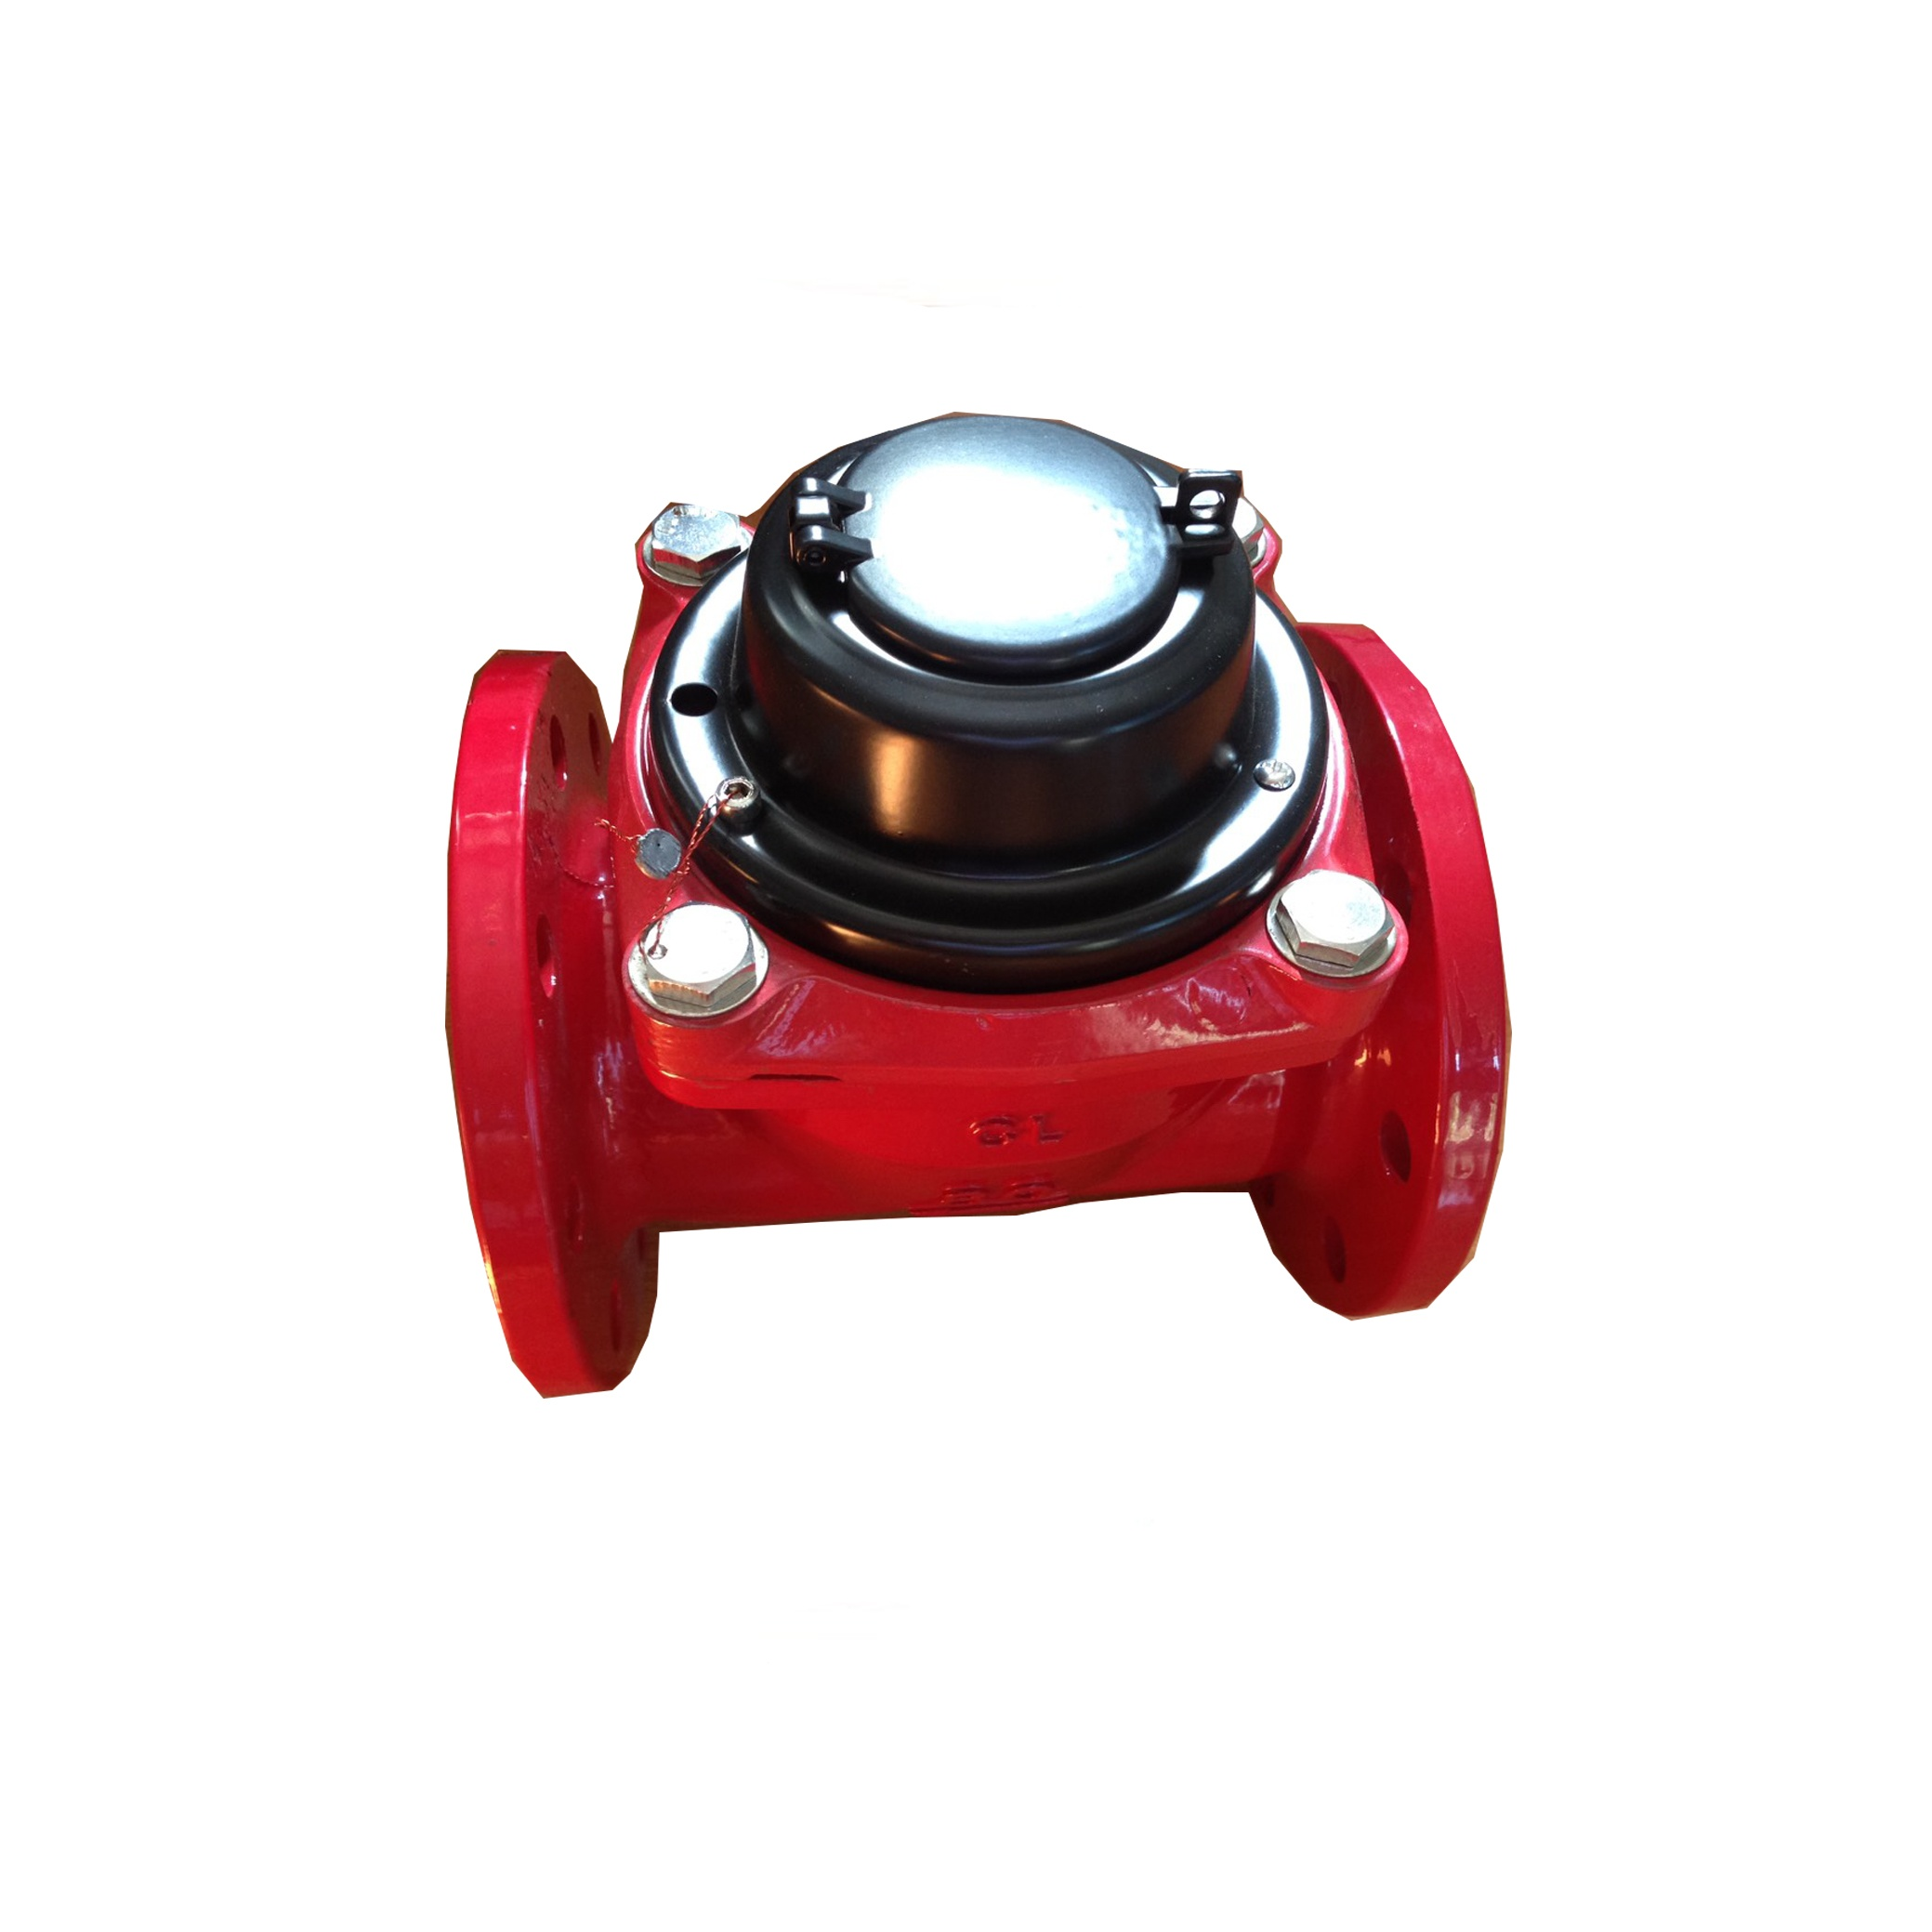 Woltman Hot Water Meter (Cast Iron)